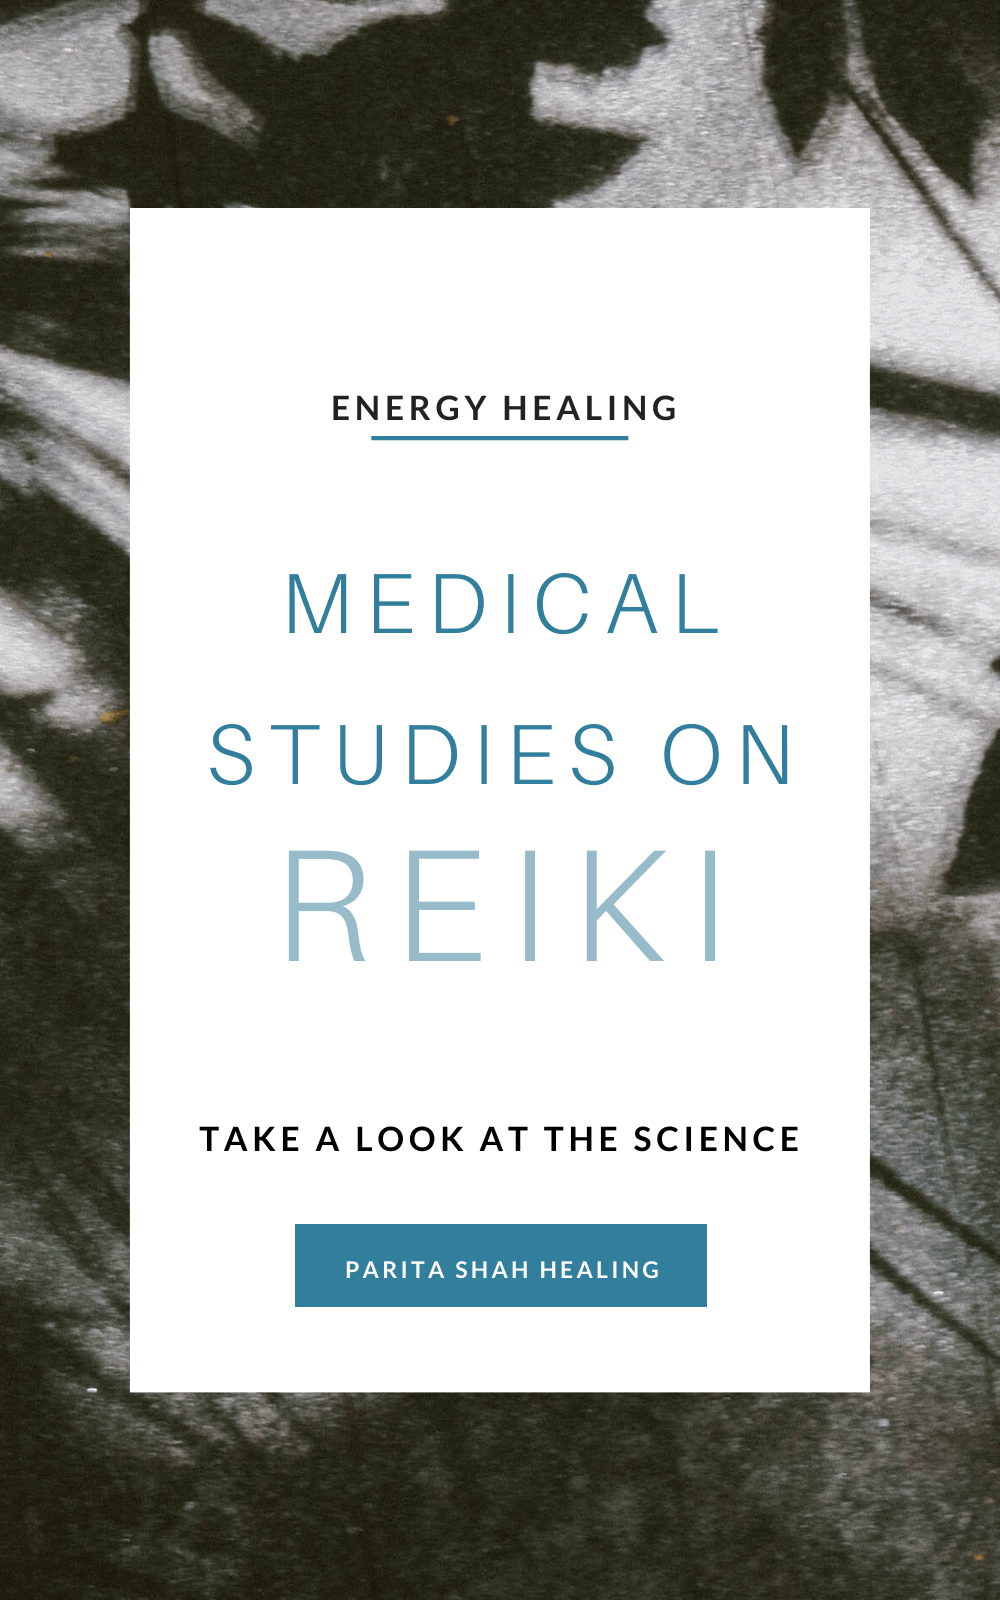 Medical Research on Reiki